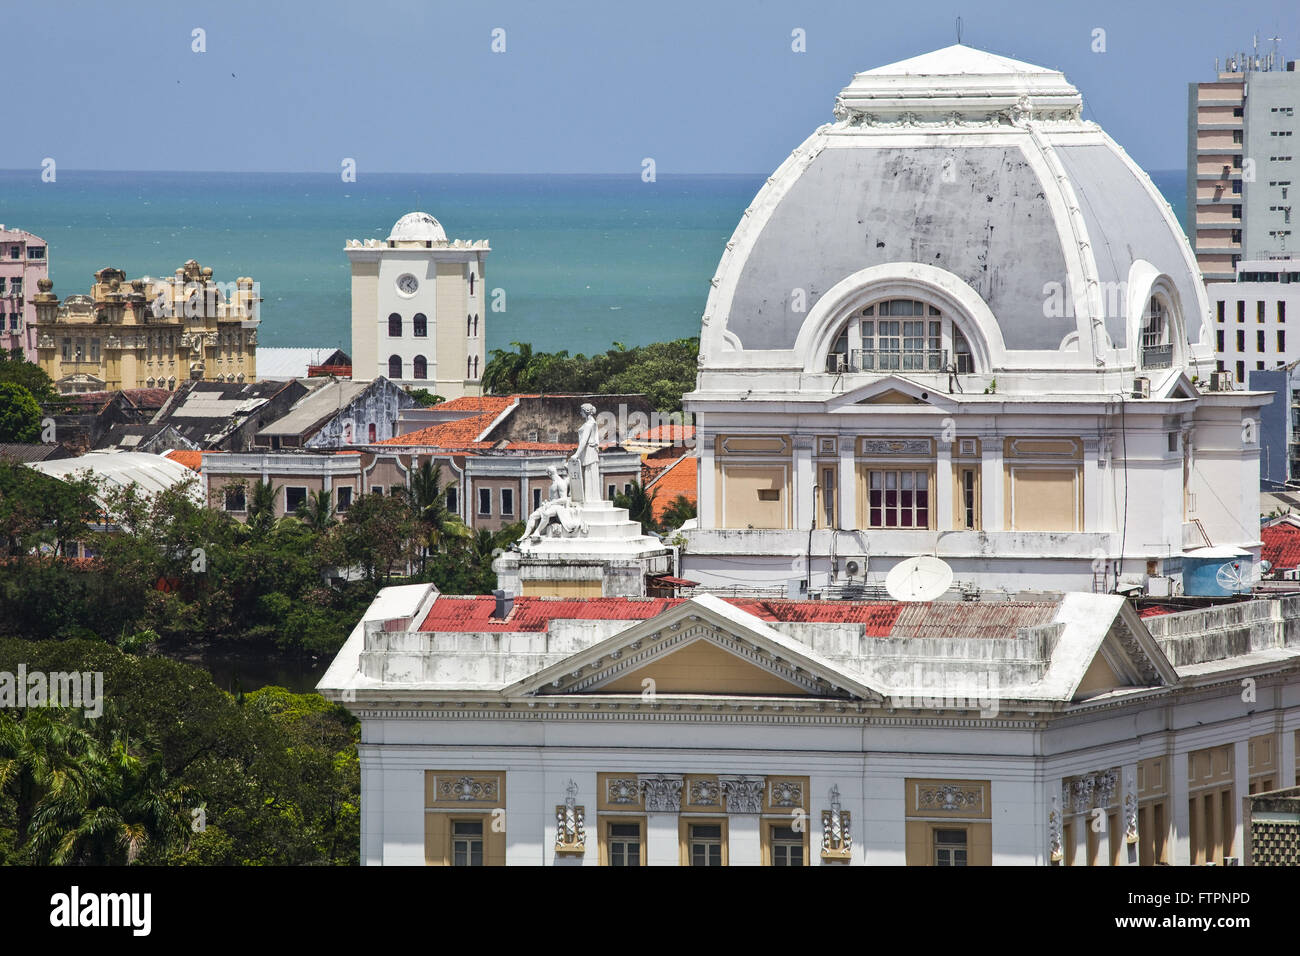 View of the dome of the Palace of Justice of Pernambuco in 1930 with the Malakoff Tower in the background - Stock Image